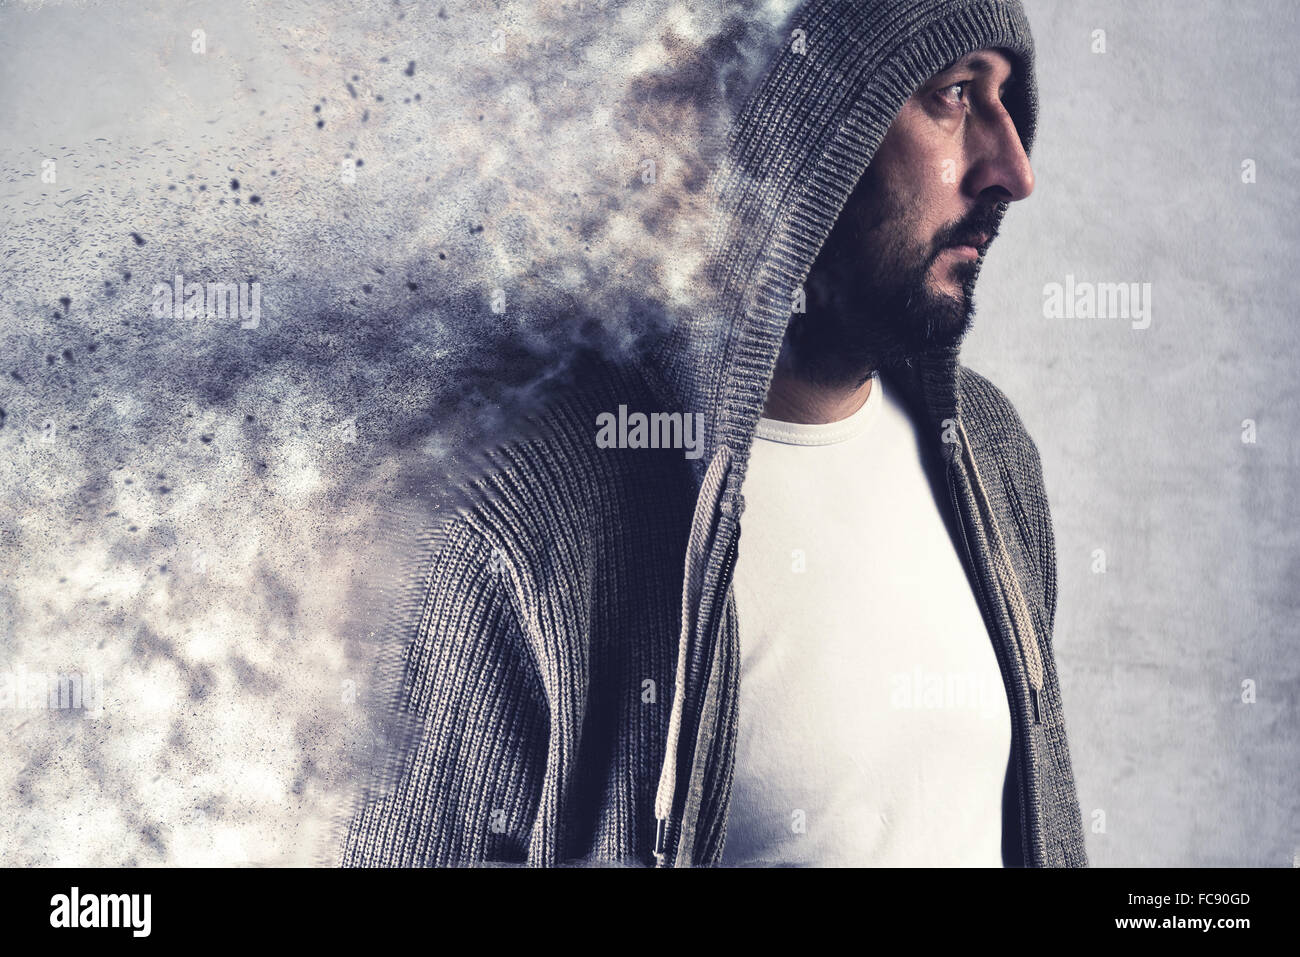 Adult bearded caucasain man dissolving under stress, conceptual image - Stock Image